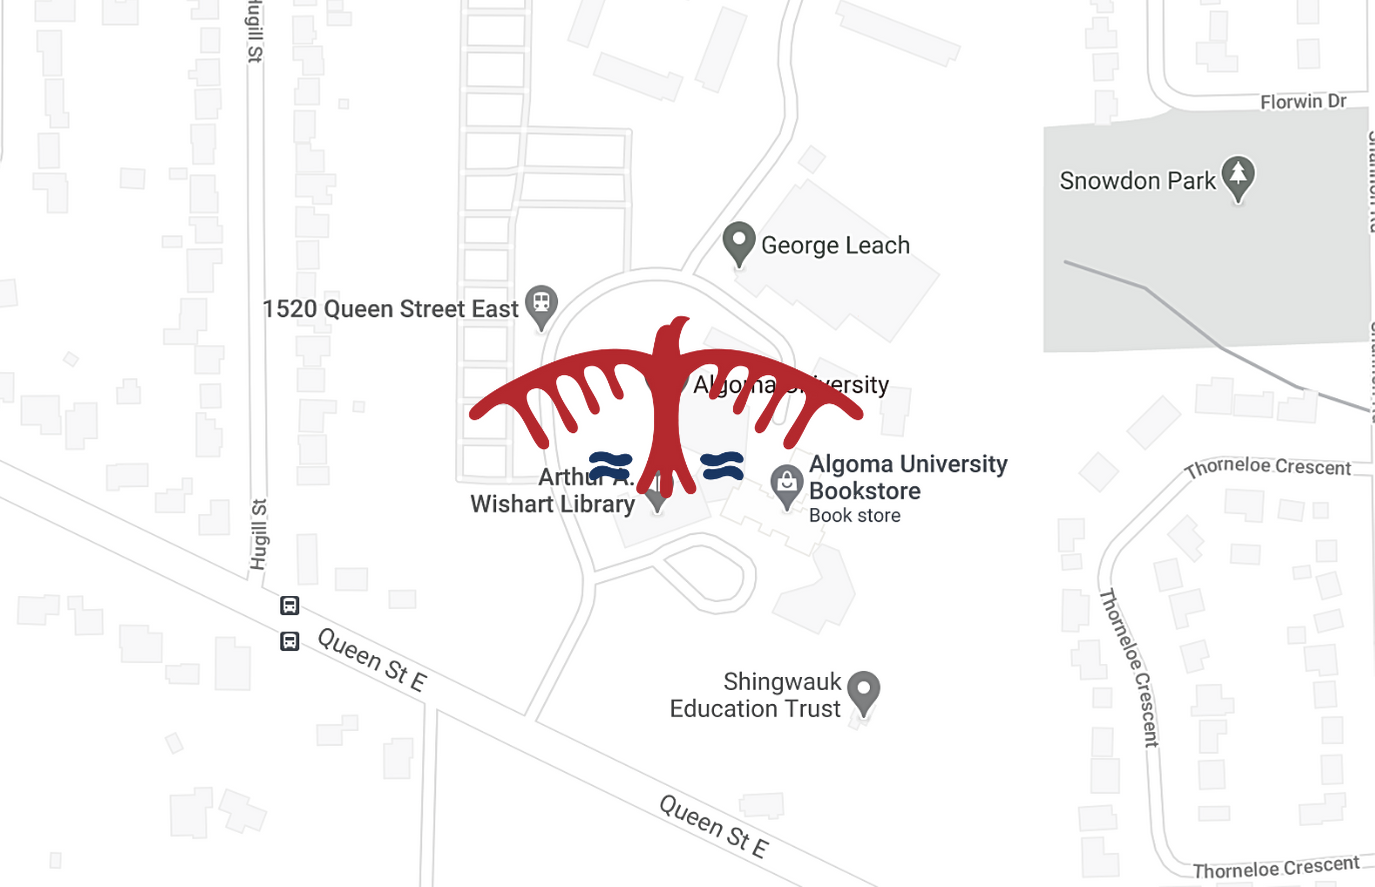 image of thunderbird logo over campus map location